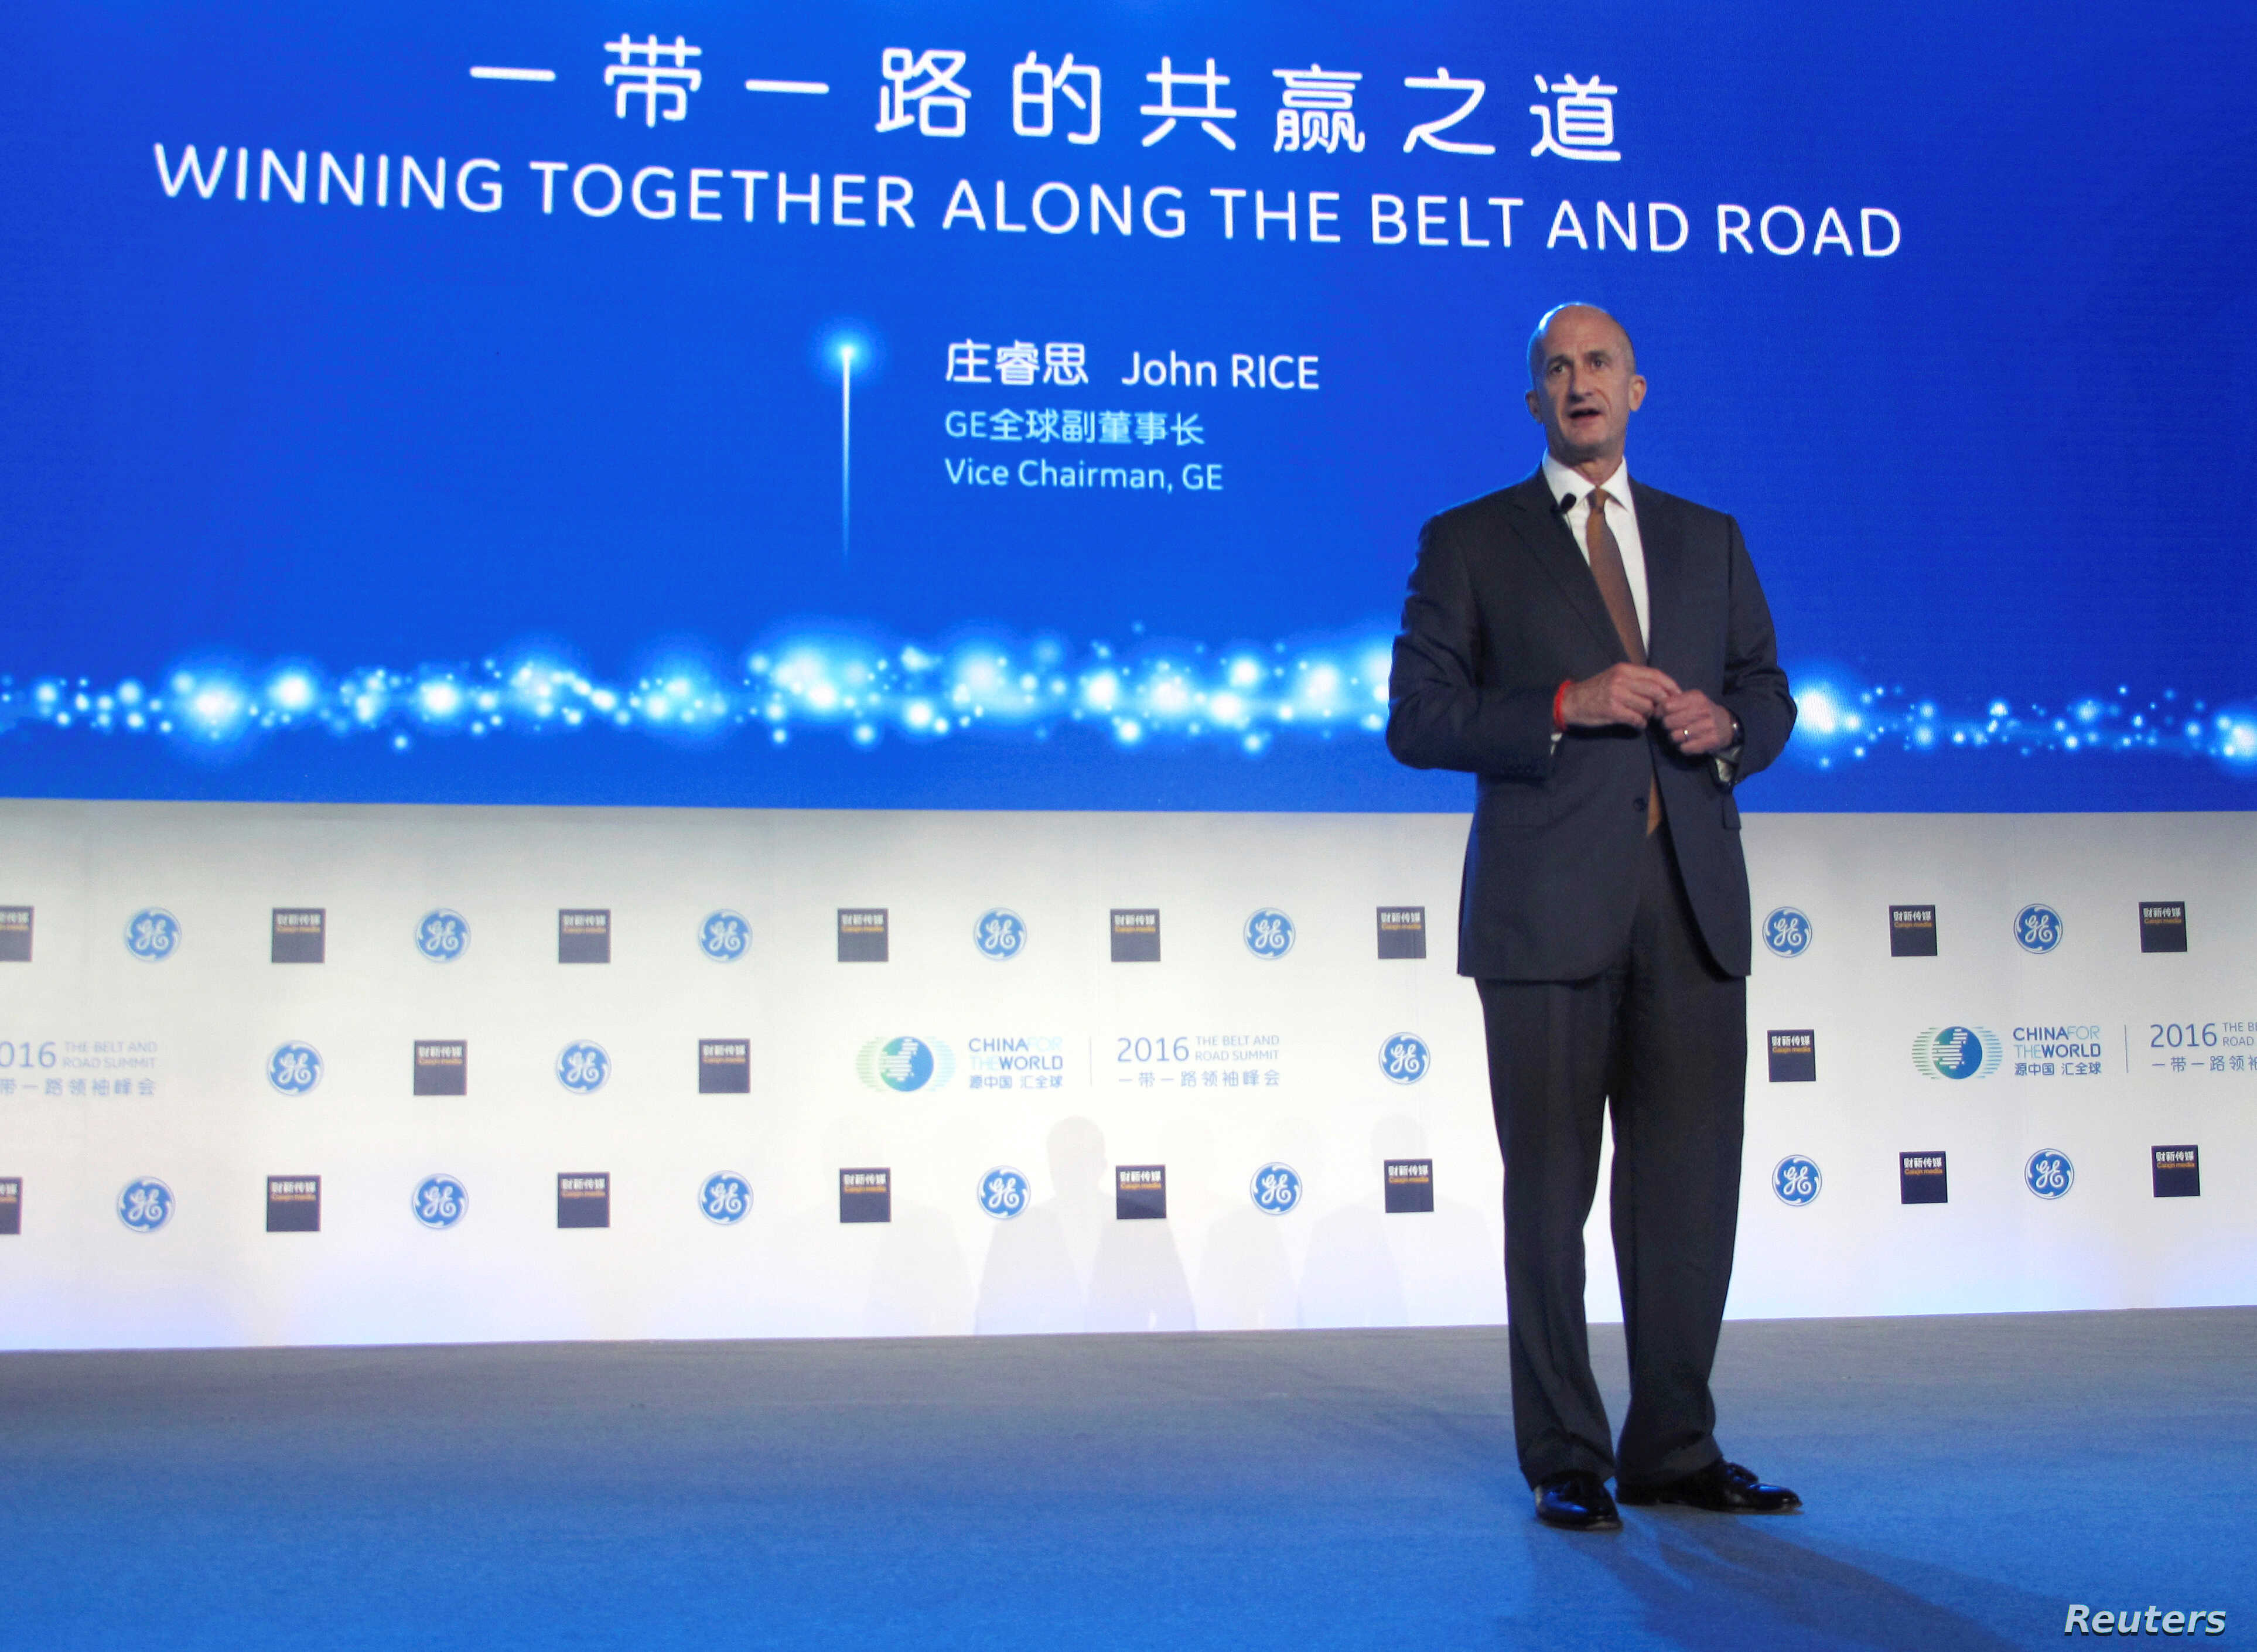 John Rice, vice president of General Electric Co (GE), speaks during an event in Beijing, China, Oct.14, 2016.